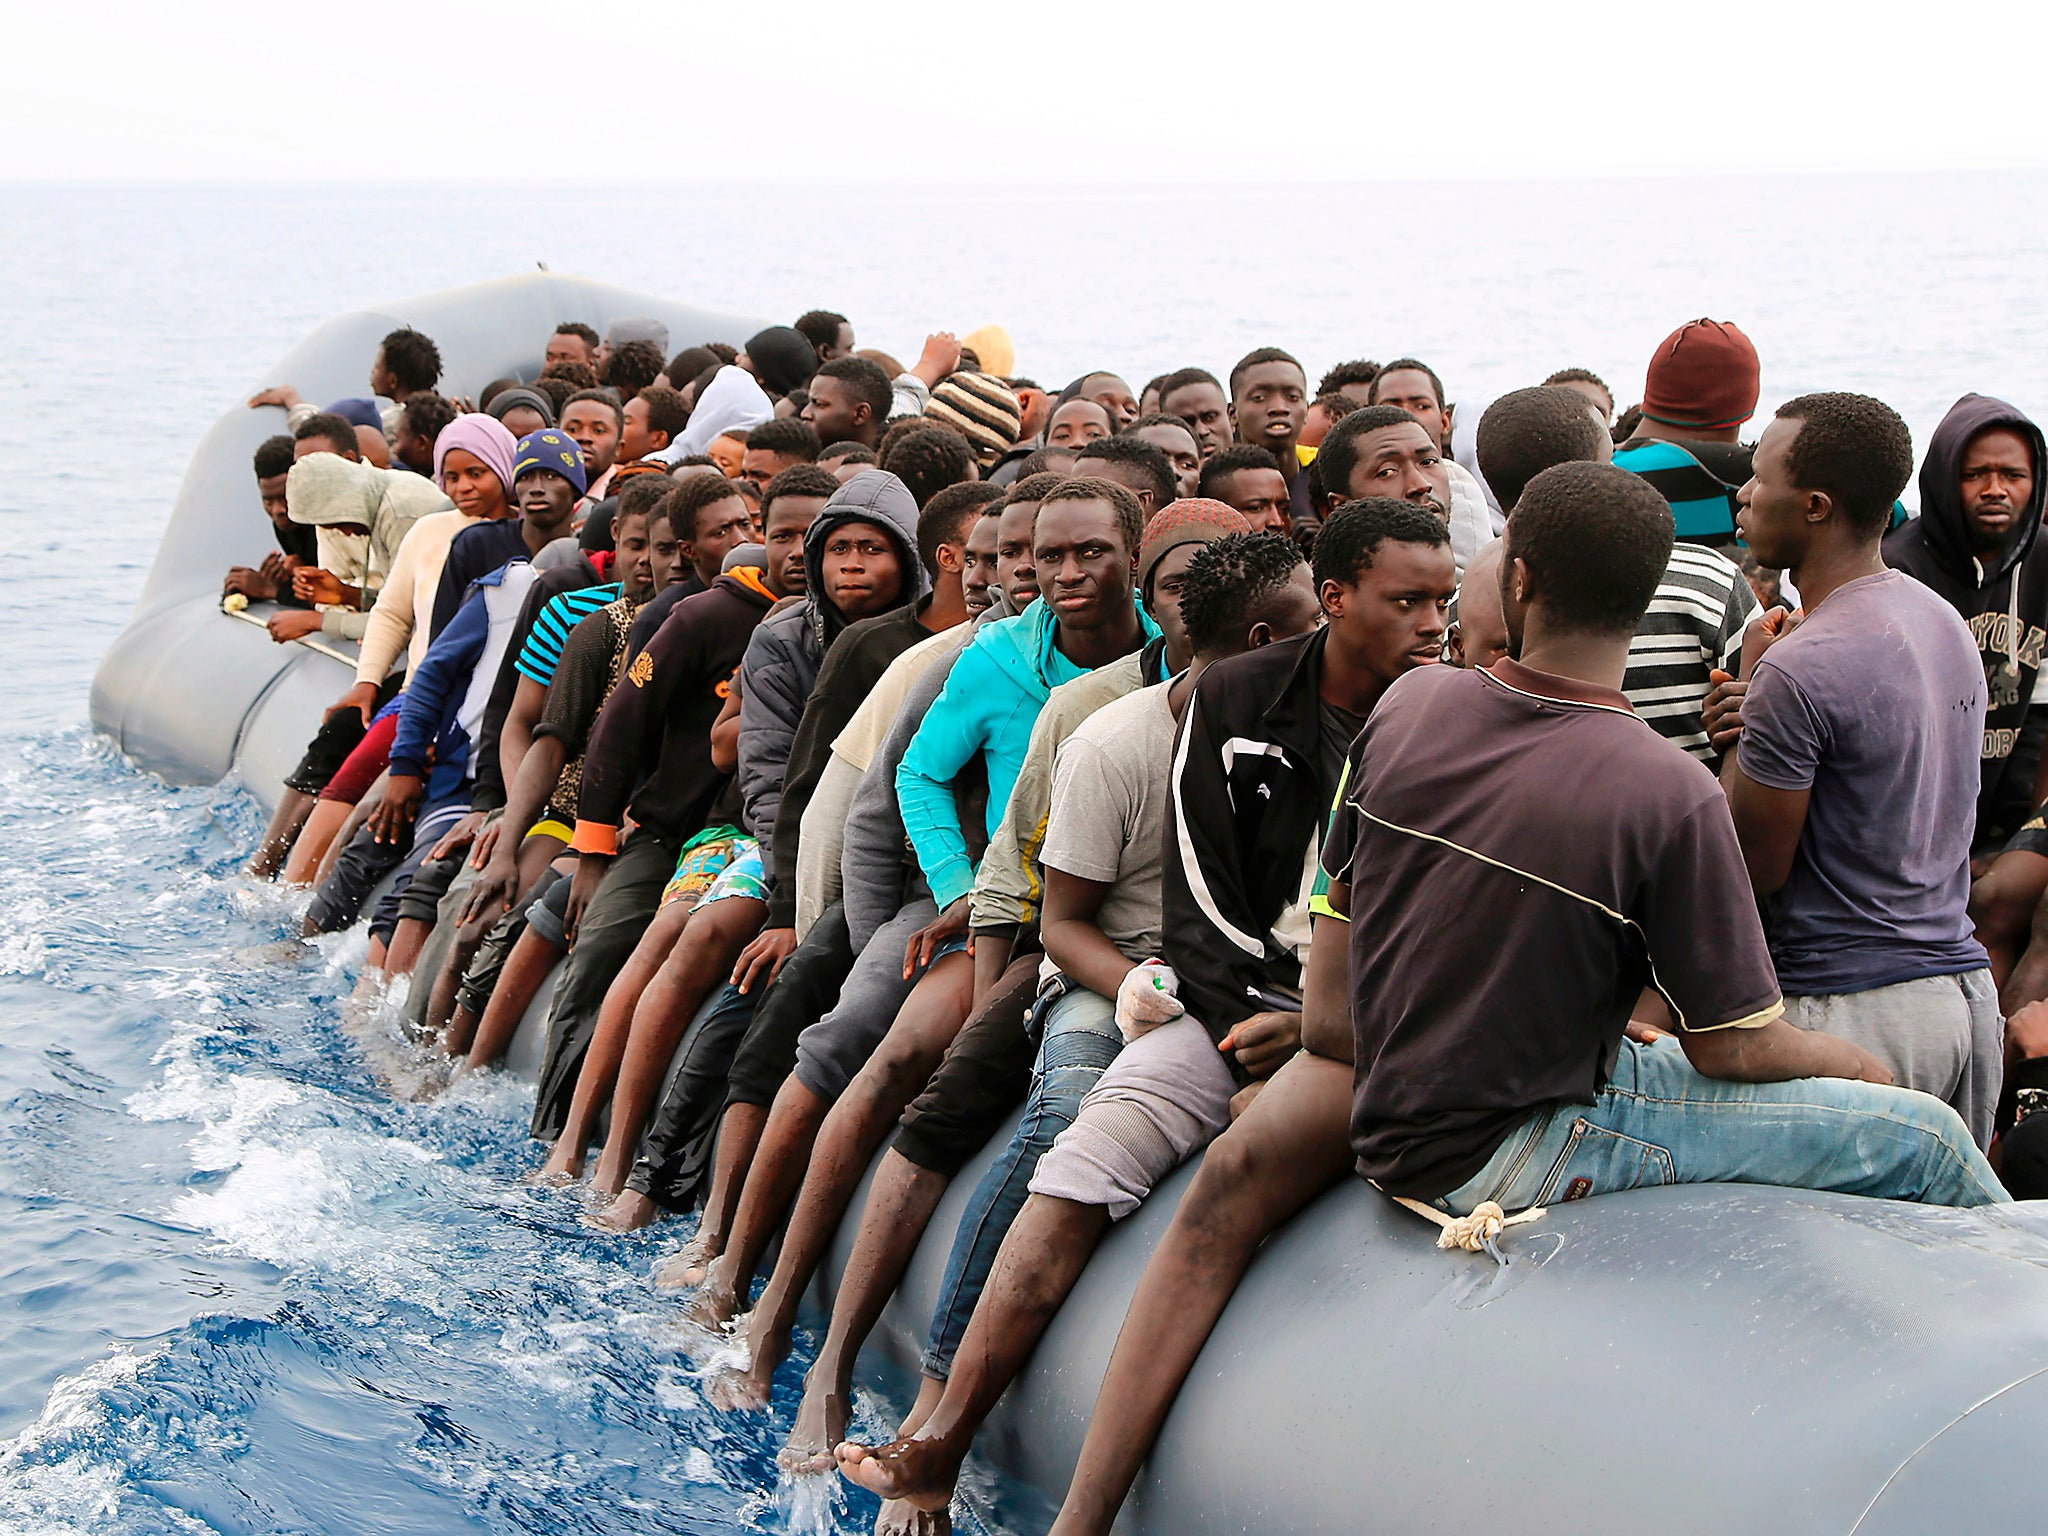 Libyan Slave Trade >> Libyan court suspends deal struck with Italy aiming to reduce refugee boat crossings over ...